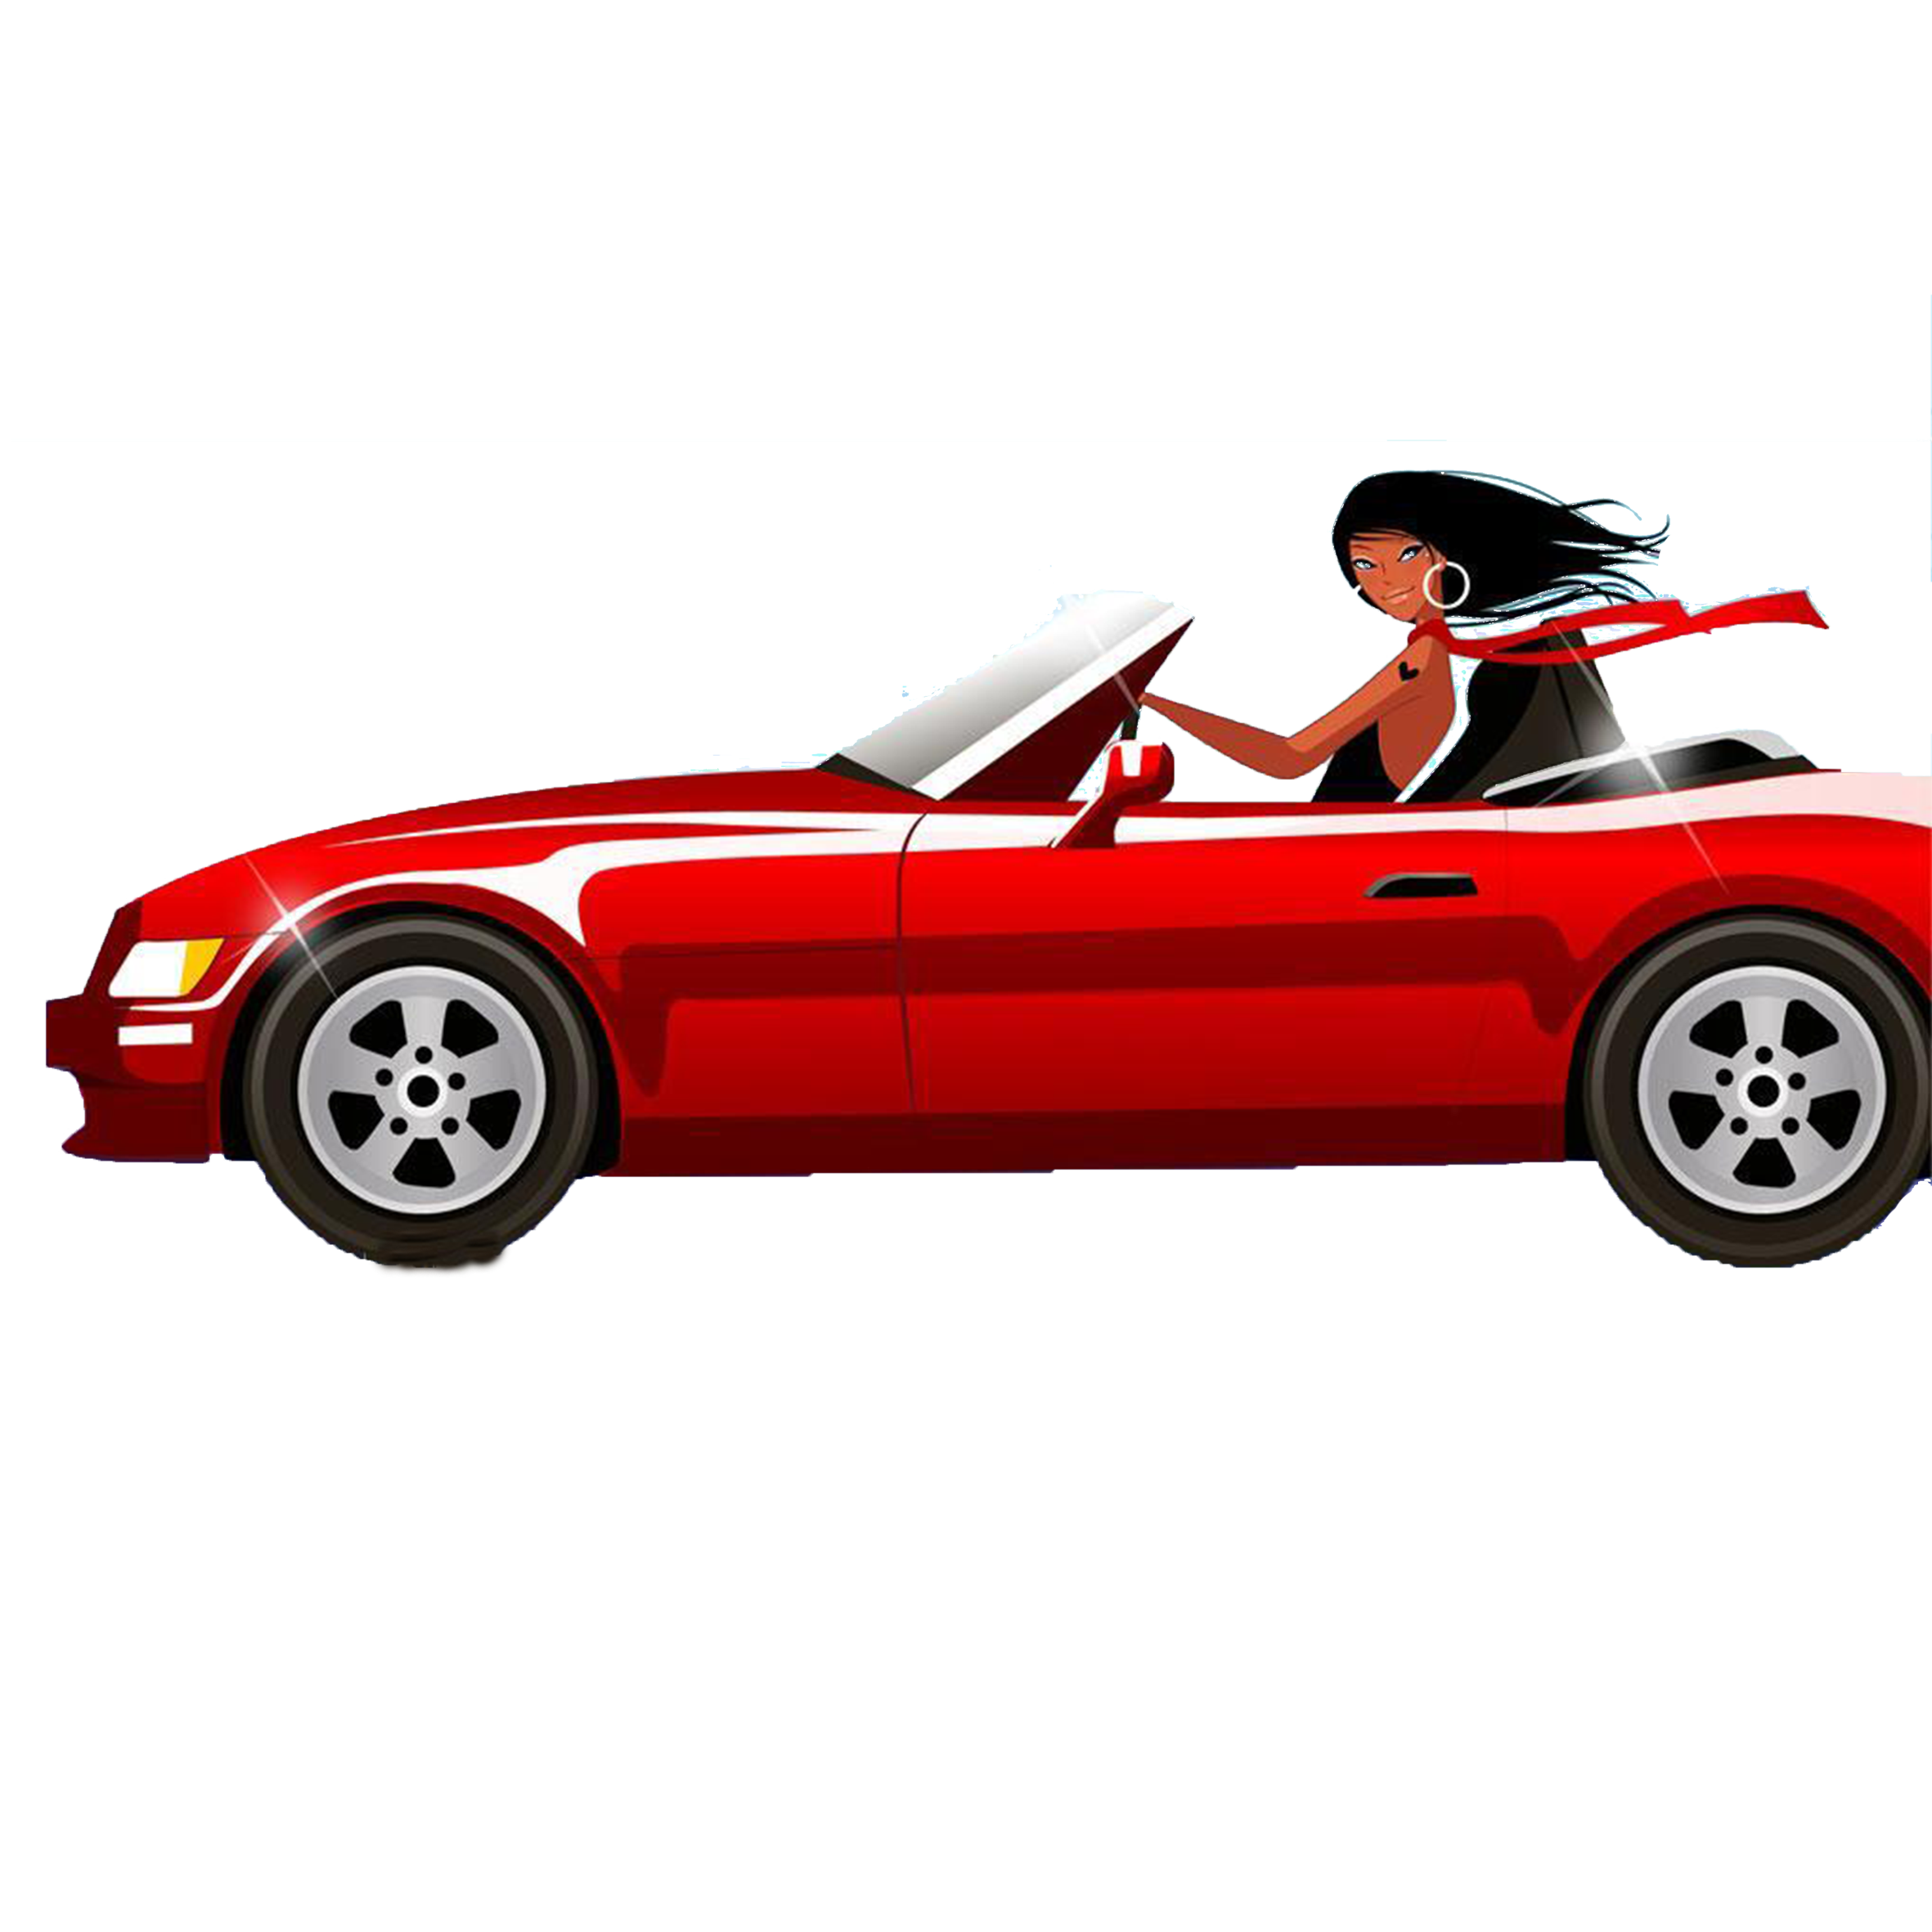 Clipart of girl driving car vector transparent download Woman Driving Royalty-free Clip art - Sports car girl 2362*2362 ... vector transparent download